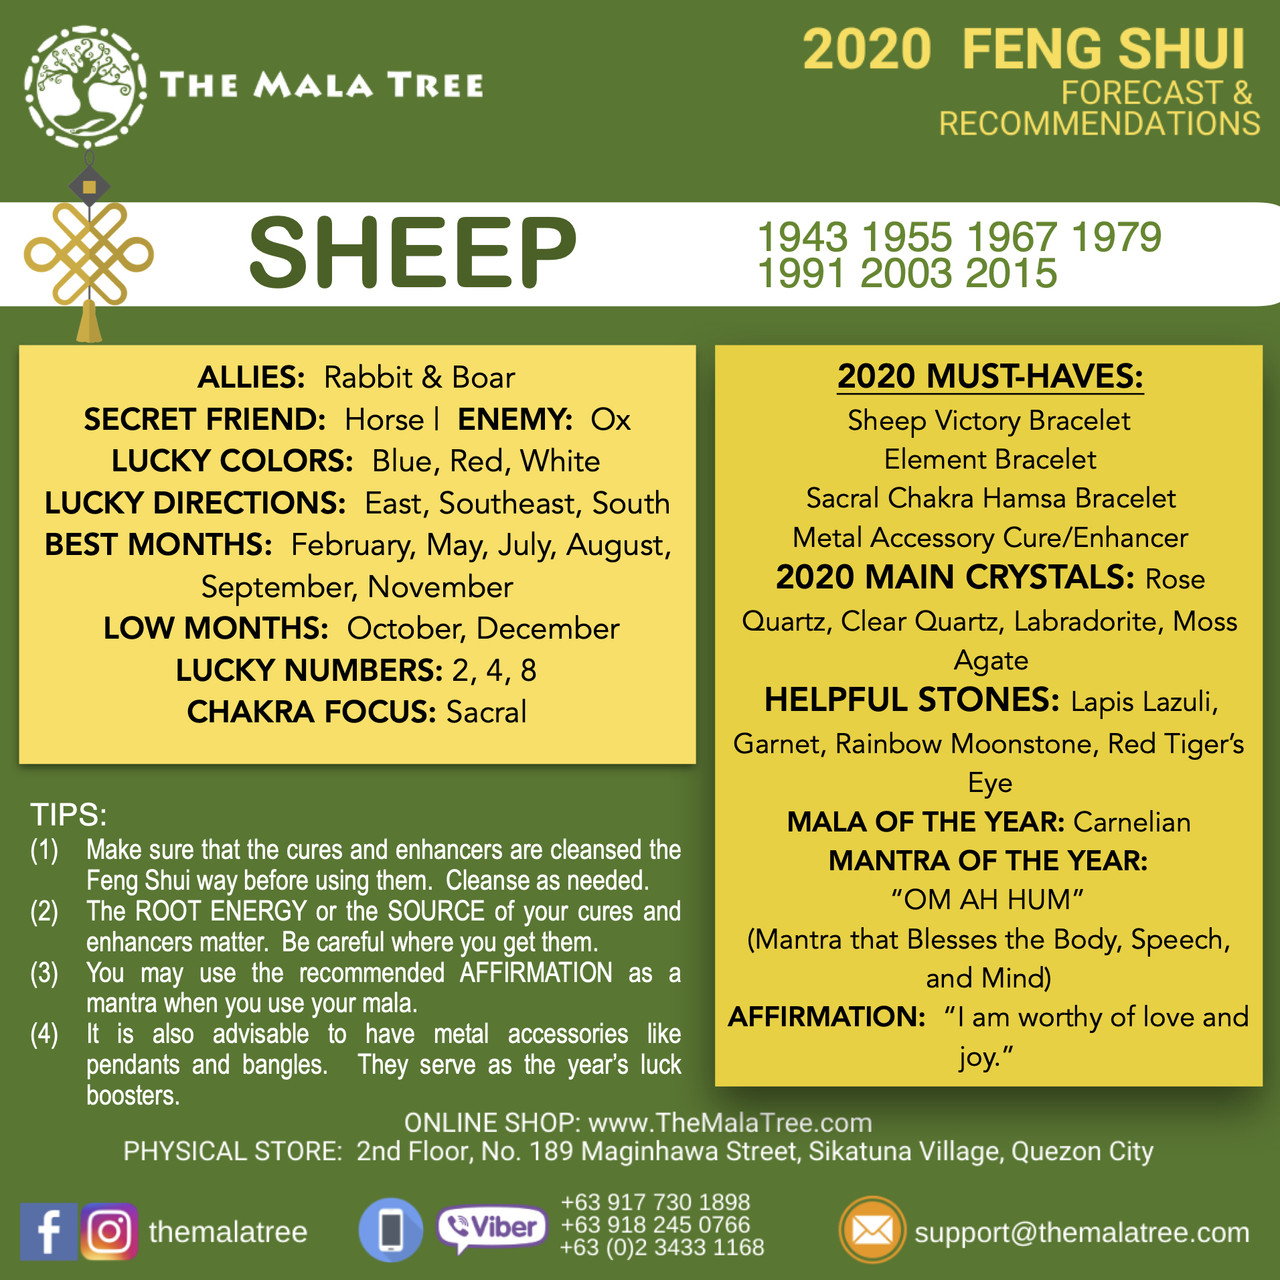 SHEEP in 2020